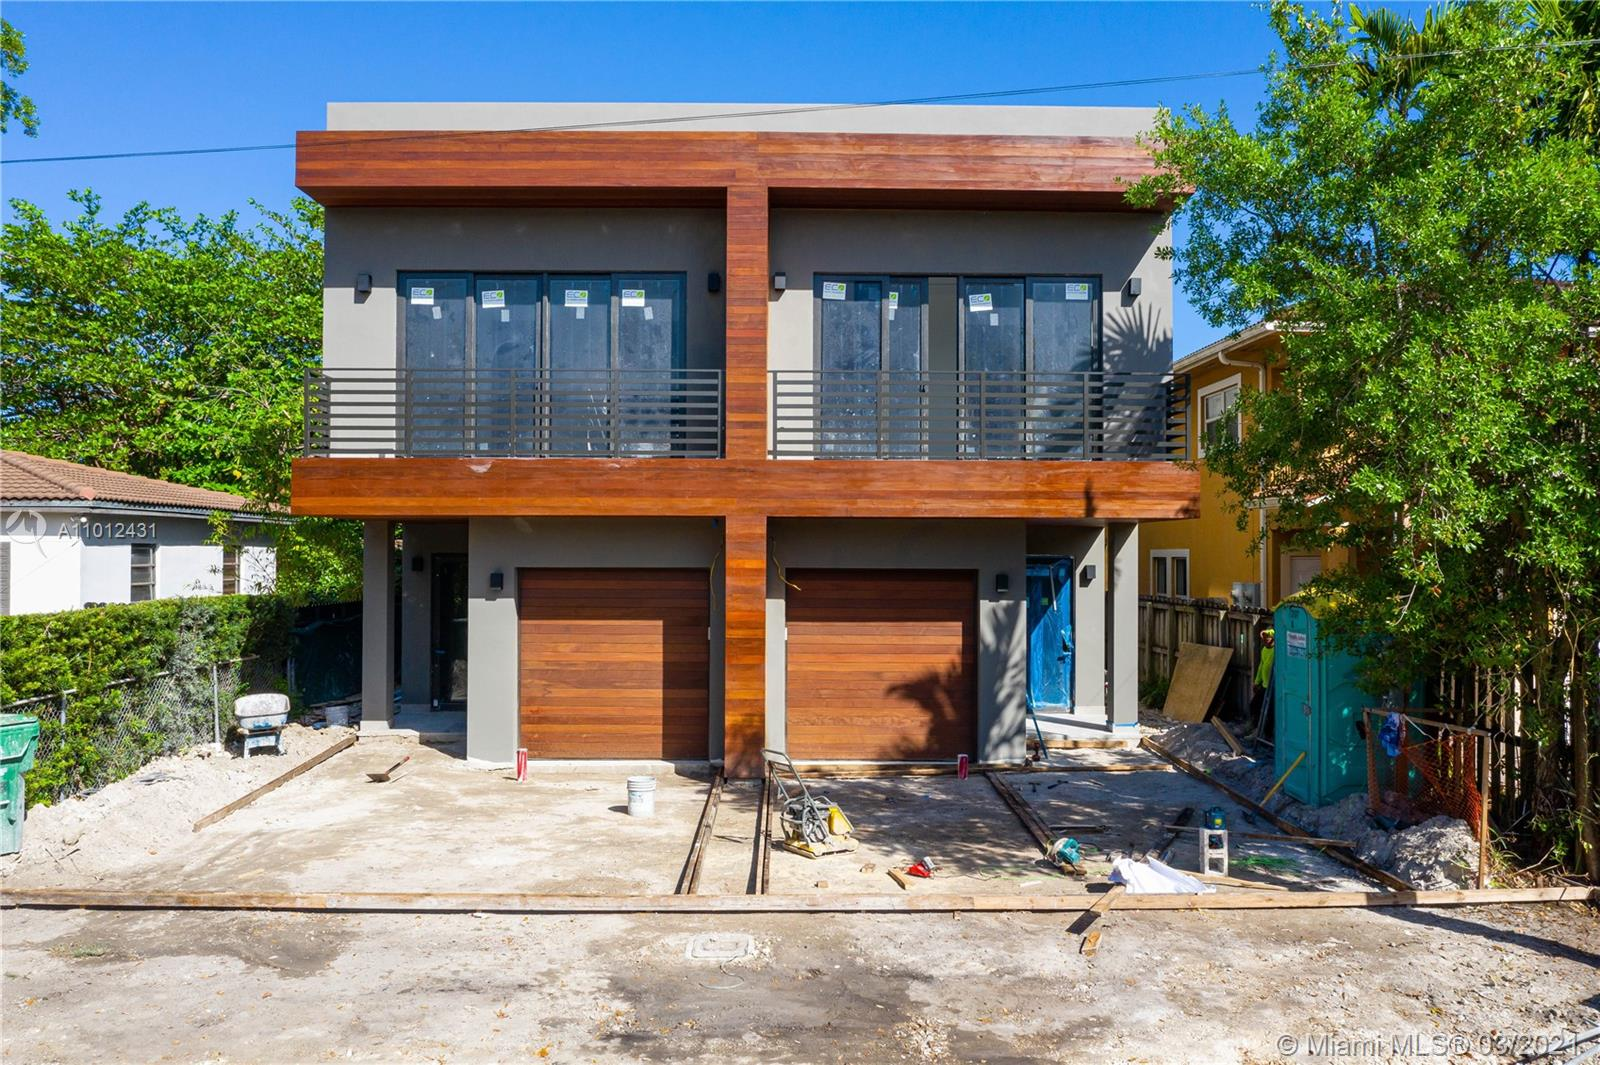 Be the first to live in this spectacular brand new construction townhome in Coconut Grove. This house features two-stories, 3 bedrooms, 3.5 bathrooms, pool, lush landscaping, Snaidero Italian cabinetry in the kitchen with Cesar Stone countertops, Thermador kitchen appliances, Grophe fixtures in kitchen and baths, Italian floor tiles, Italian doors, Ipe planking and garage doors, Amazon Alexa mirrors, rings smart home technology, GE washer/dryer & more. **Property should be ready for occupancy in April 2021.